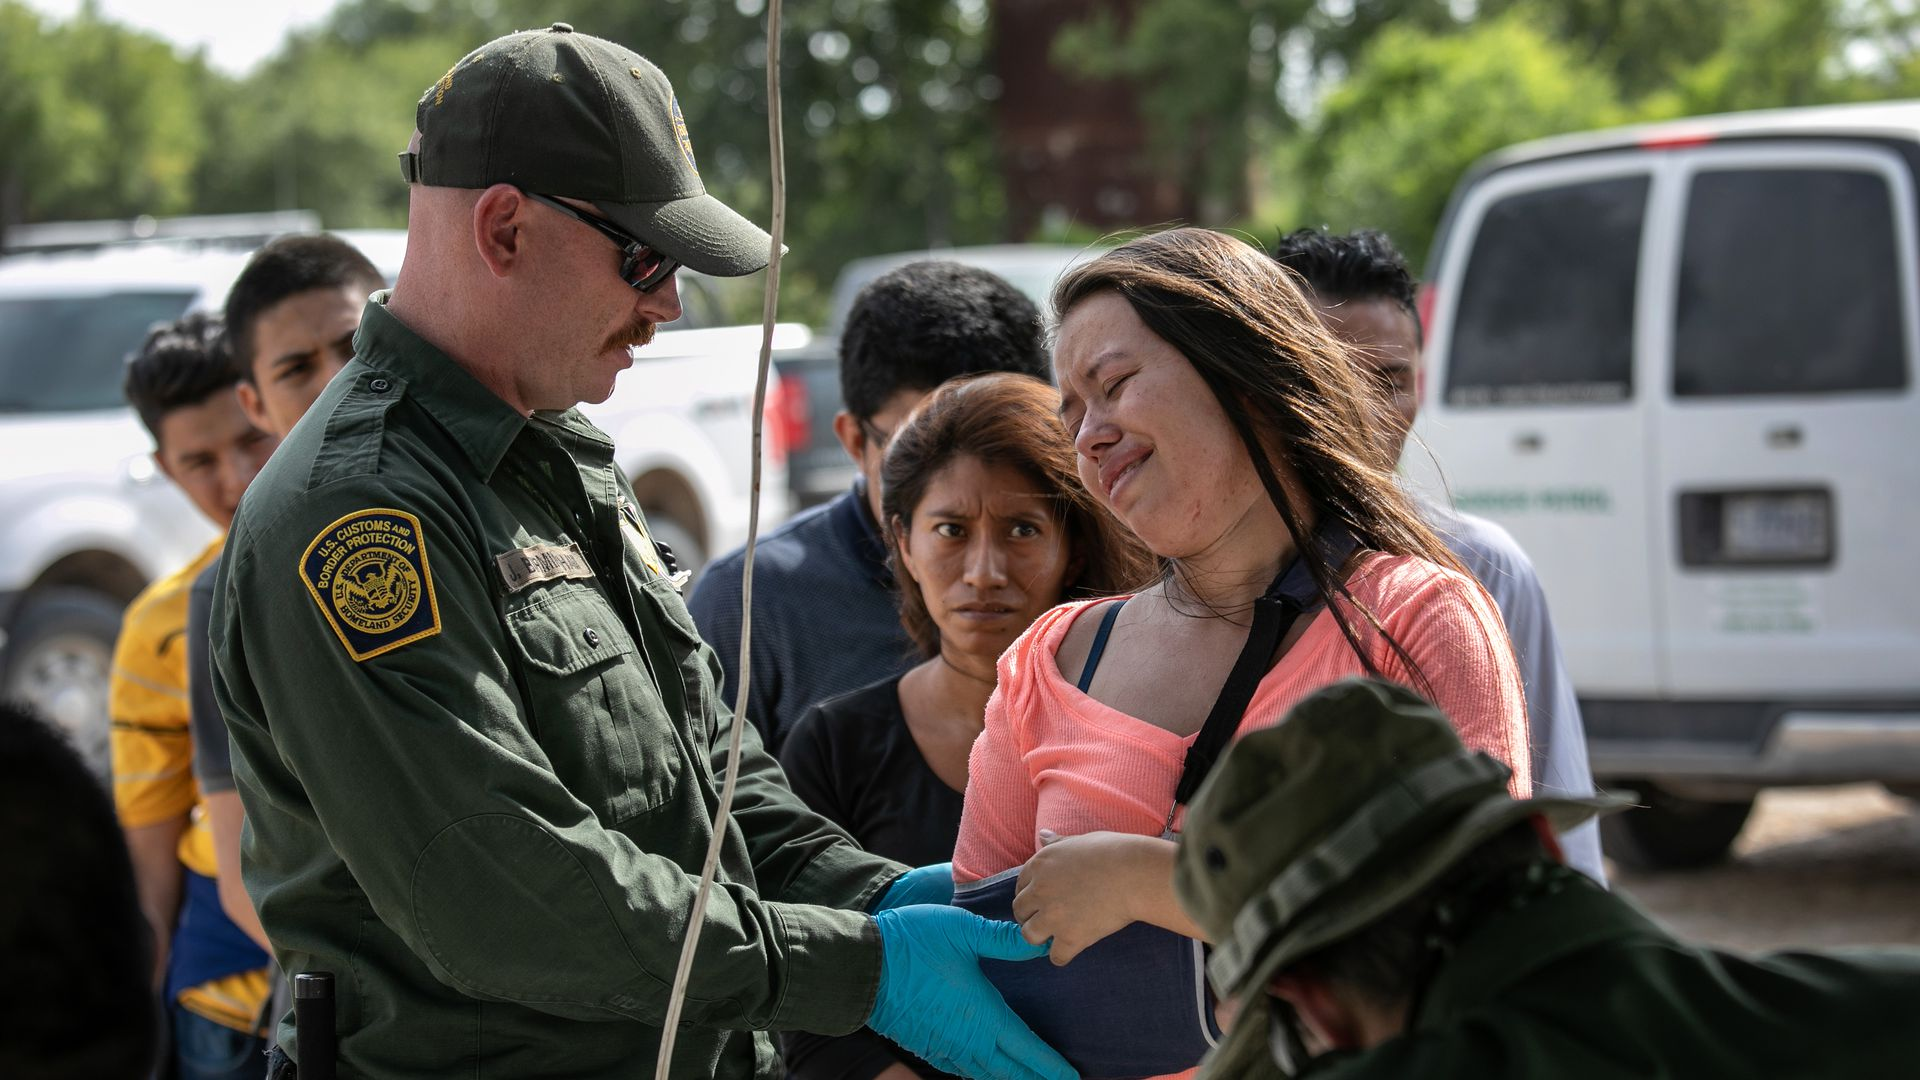 A border patrol officer checks a migrant's arm which is in a cast.